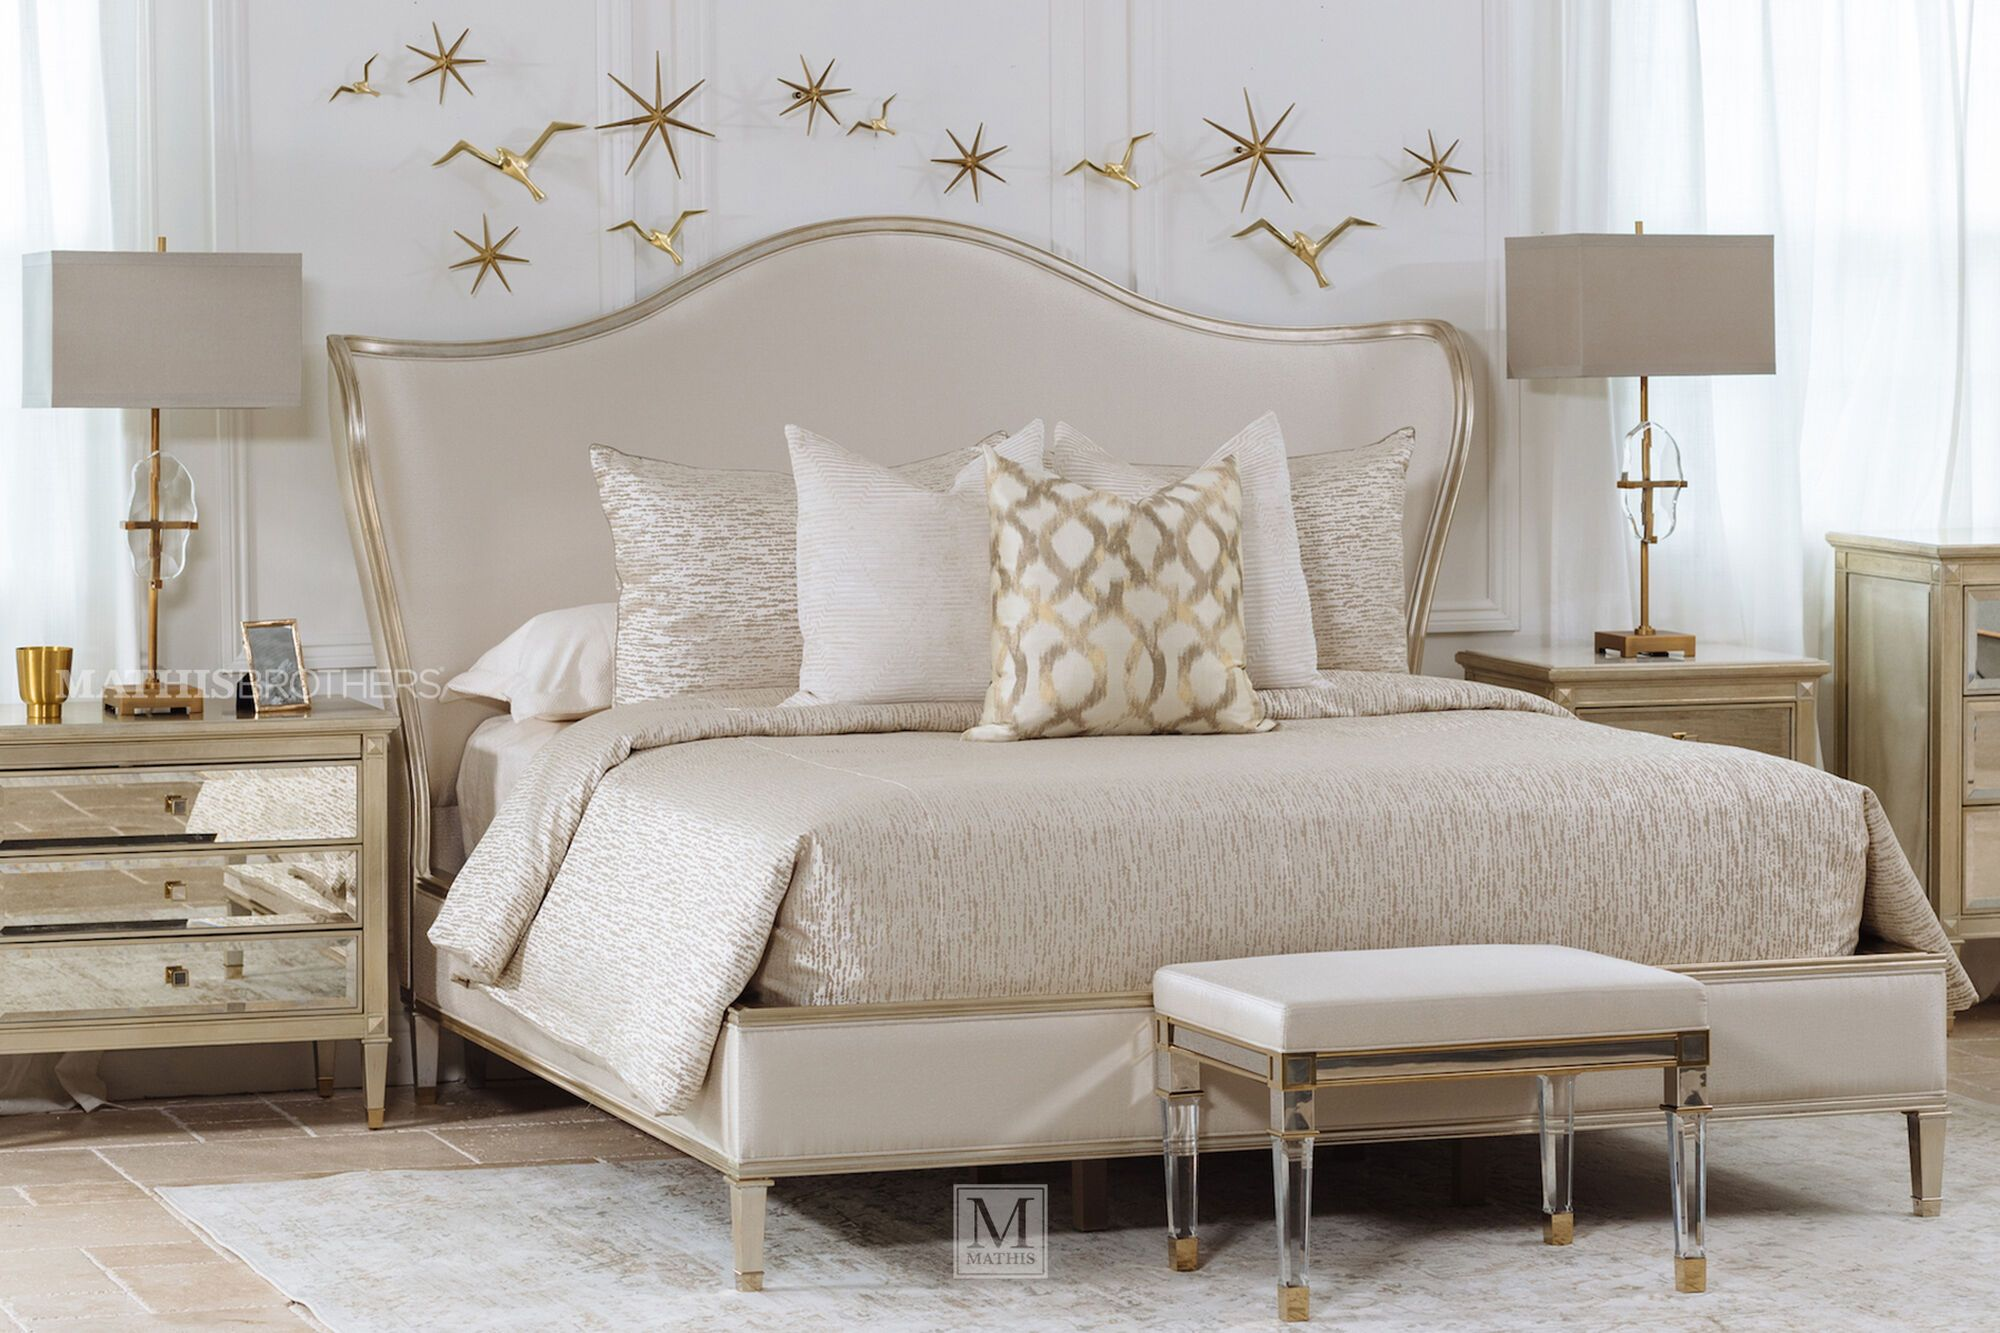 62 Modern California King Bed In Beige Mathis Brothers Furniture Upholstered Bed Decor Beige Bedroom Furniture California King Bedding